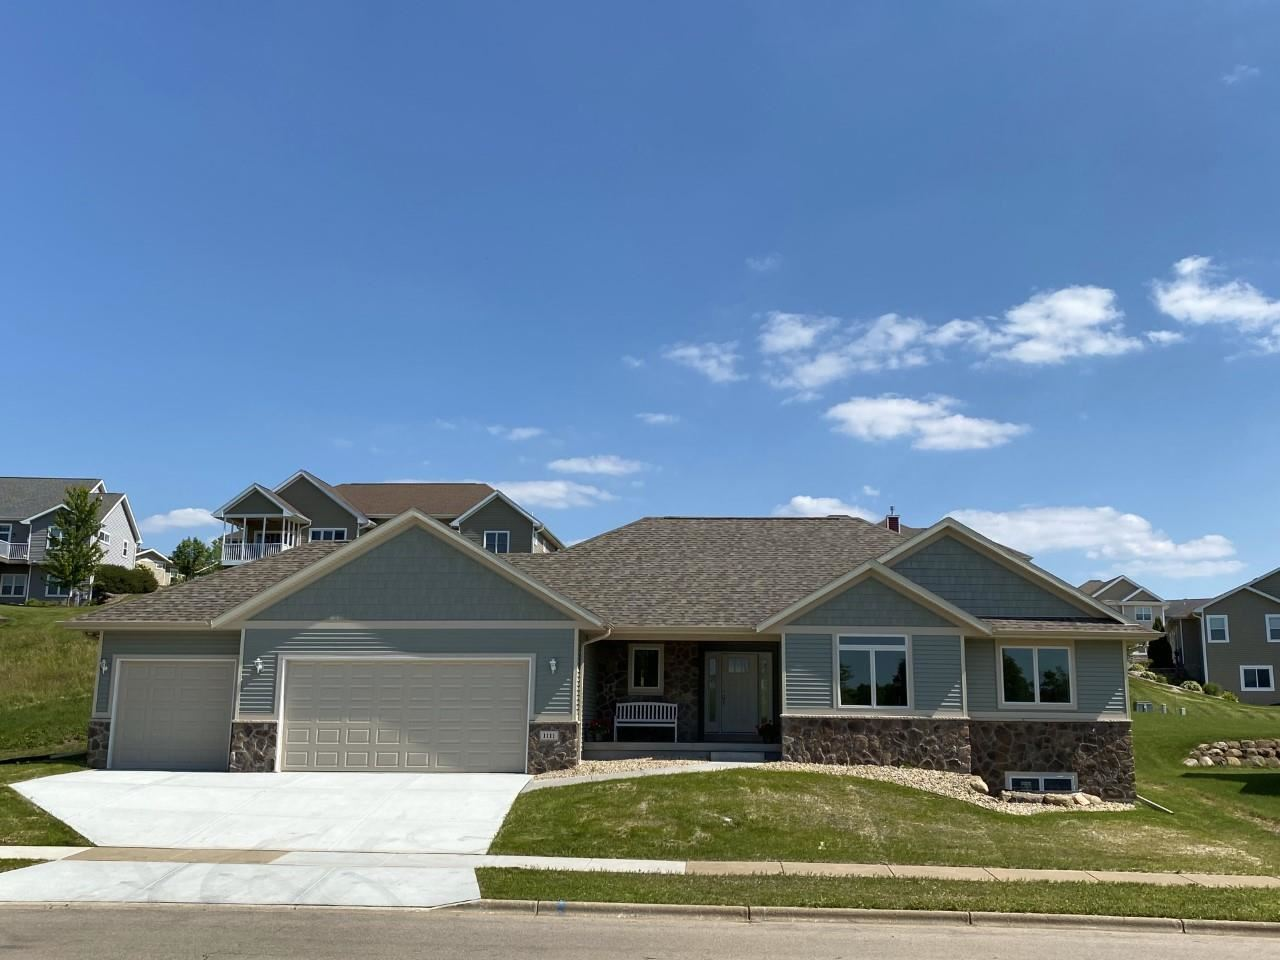 1111 Division St, Waunakee, WI 53597 - #: 1886436